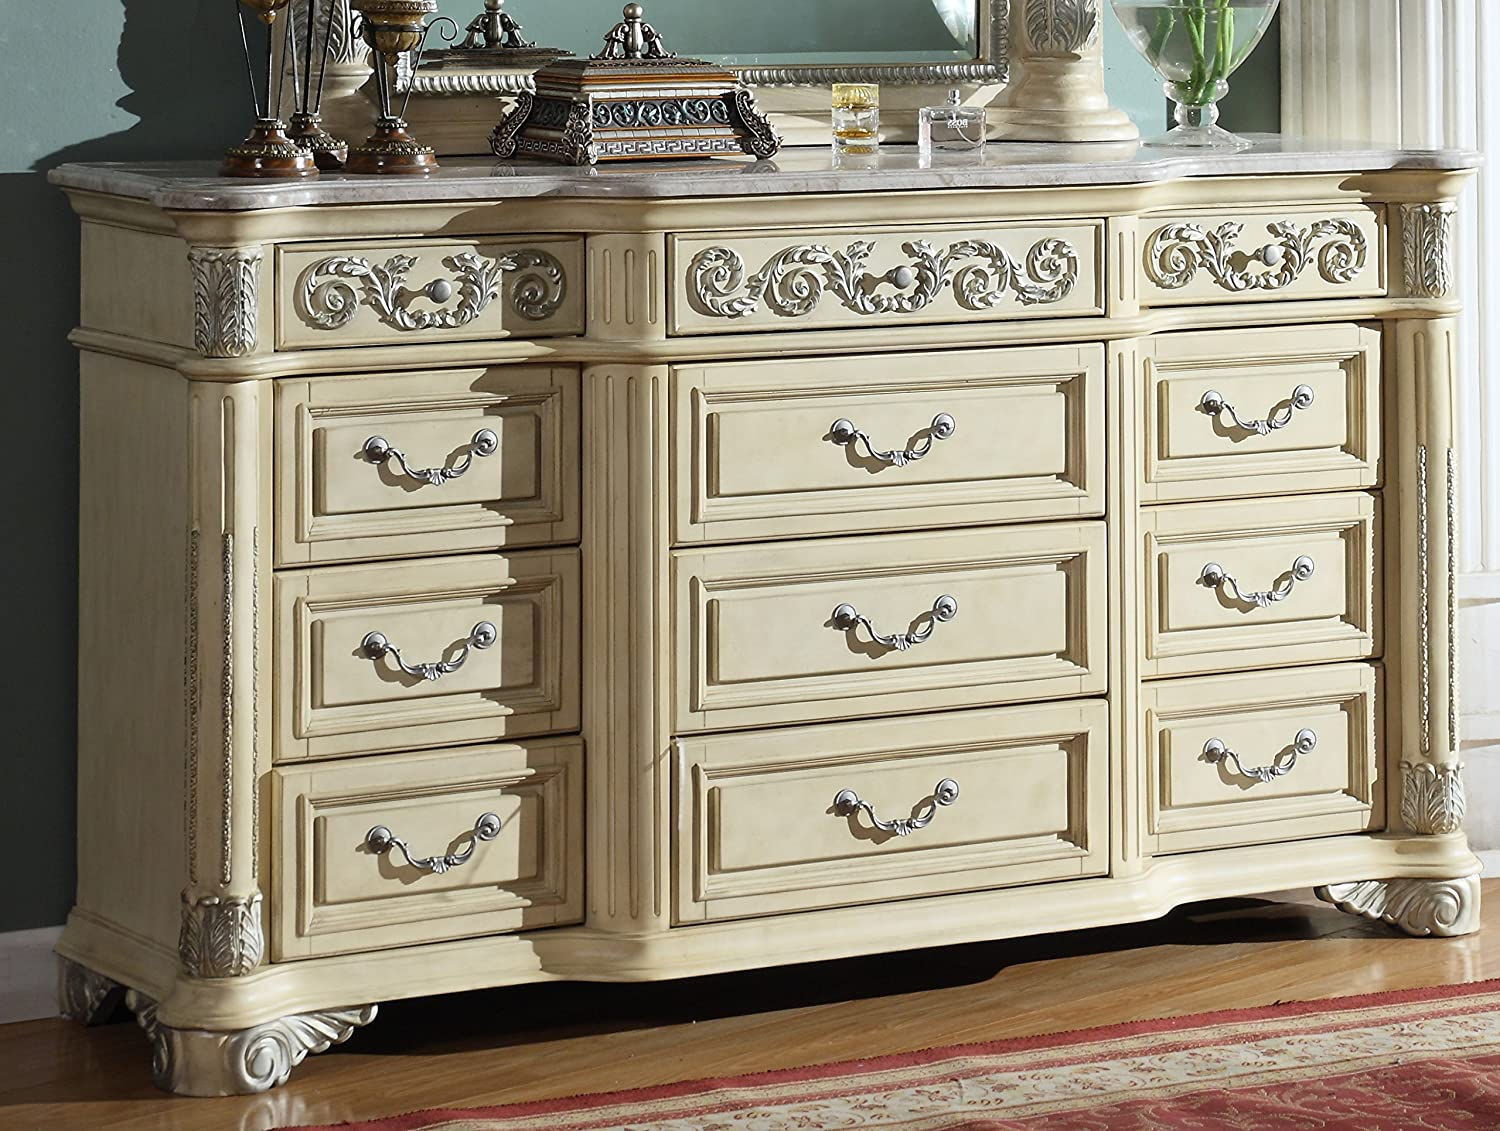 Meridian furniture sienna d sienna traditional style 12 drawer solid wood bedroom dresser with detailed hand carved designs and genuine marble top